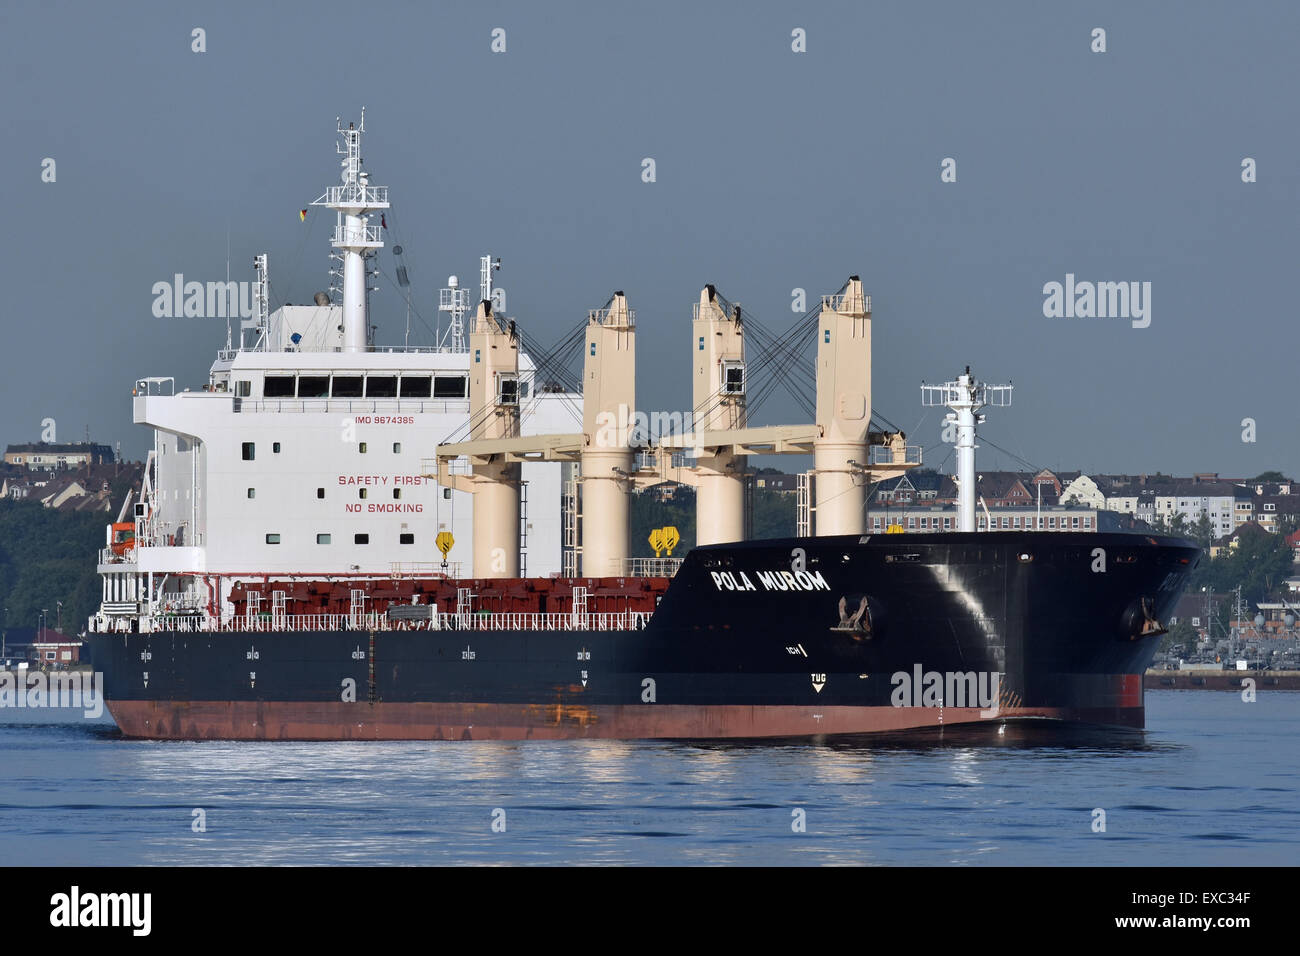 Bulk Carrier Pola Murom just left Holtenau Locks an is now heading for the baltic sea - Stock Image